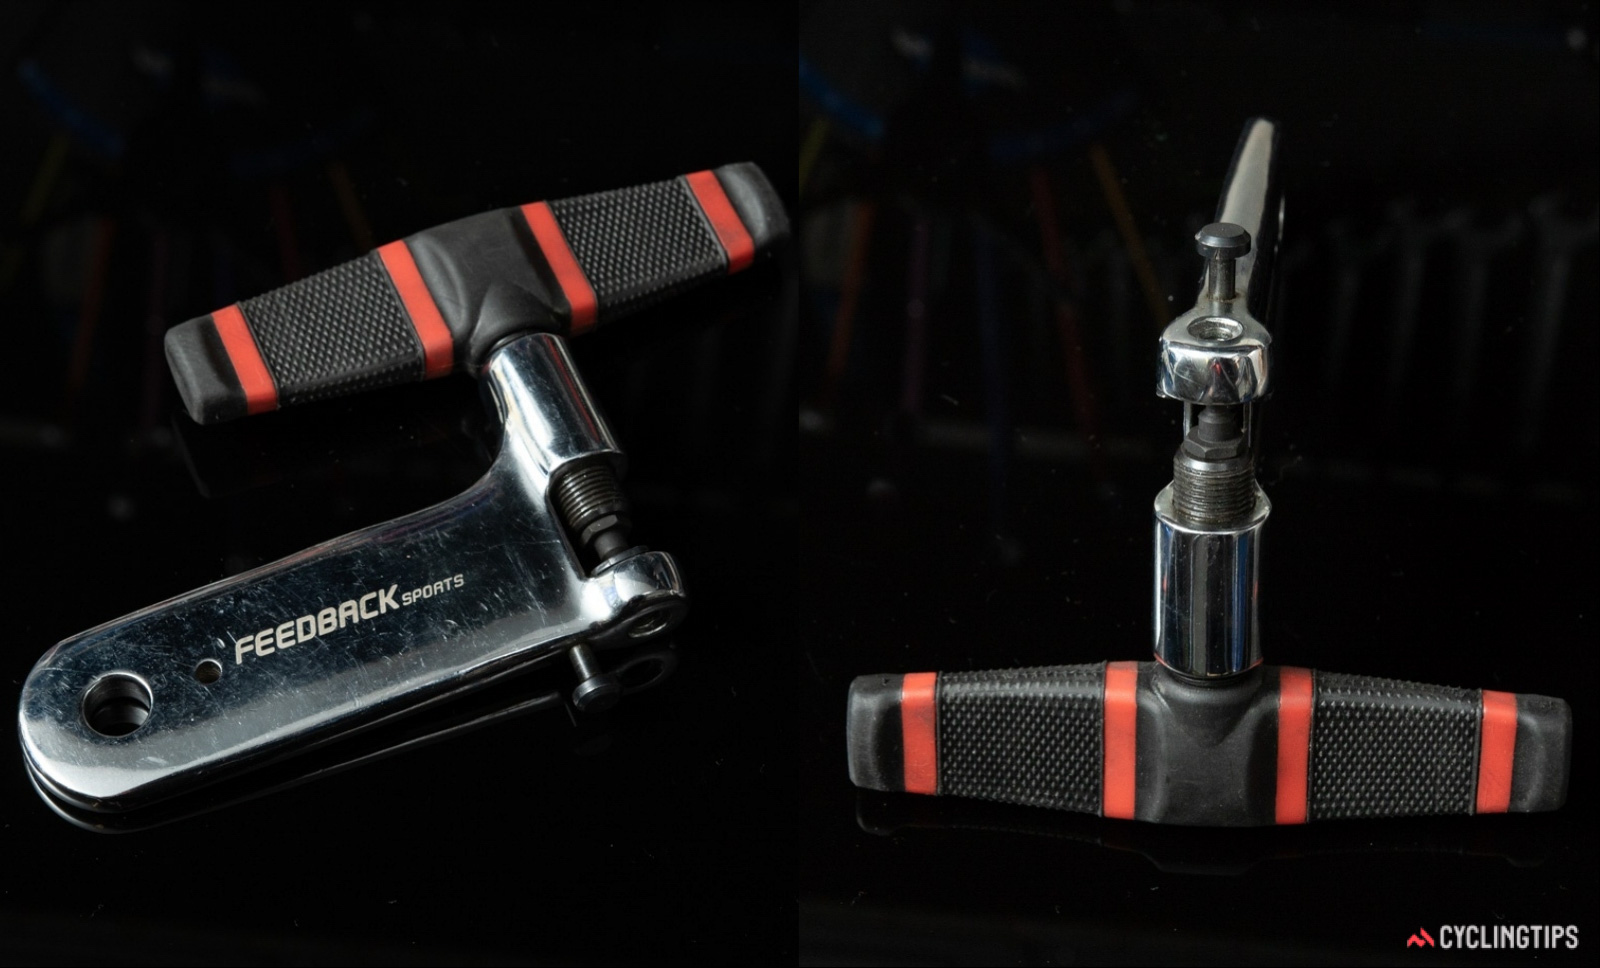 Feedback Sports Chain Pin Press tool review